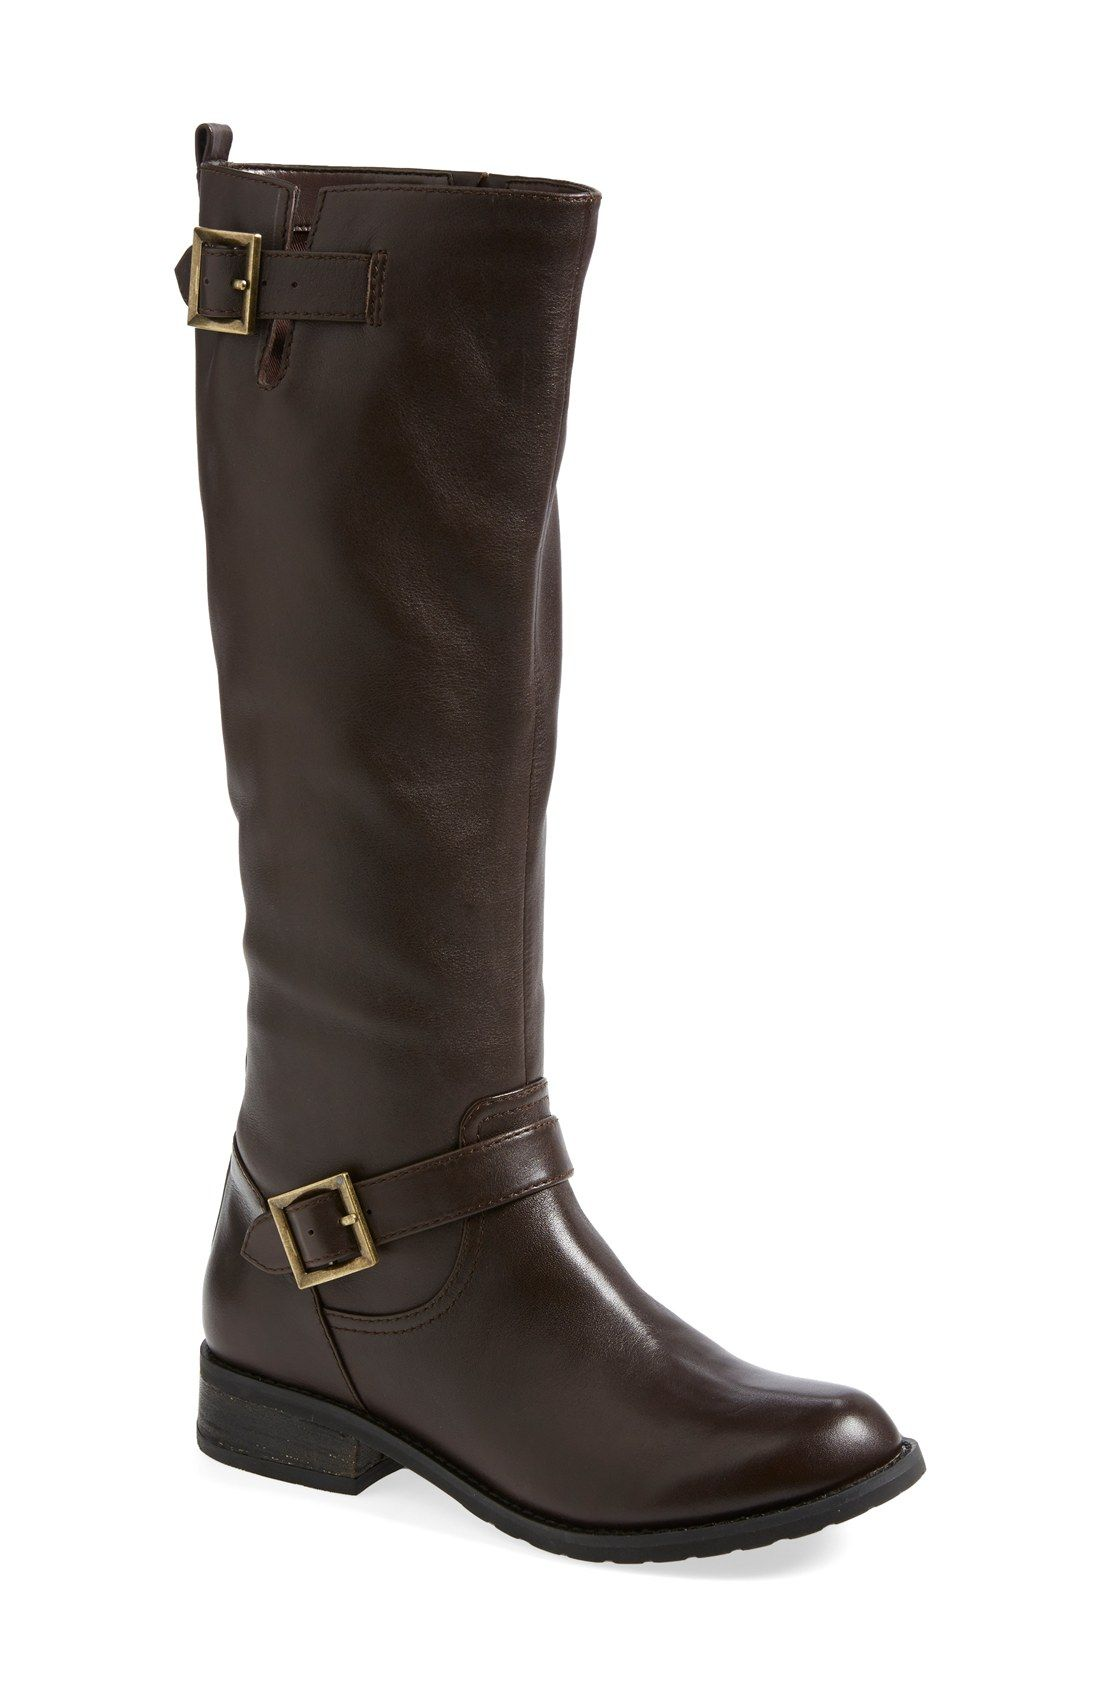 2e3d967d93dc Comfy moto style boots to kick around in.